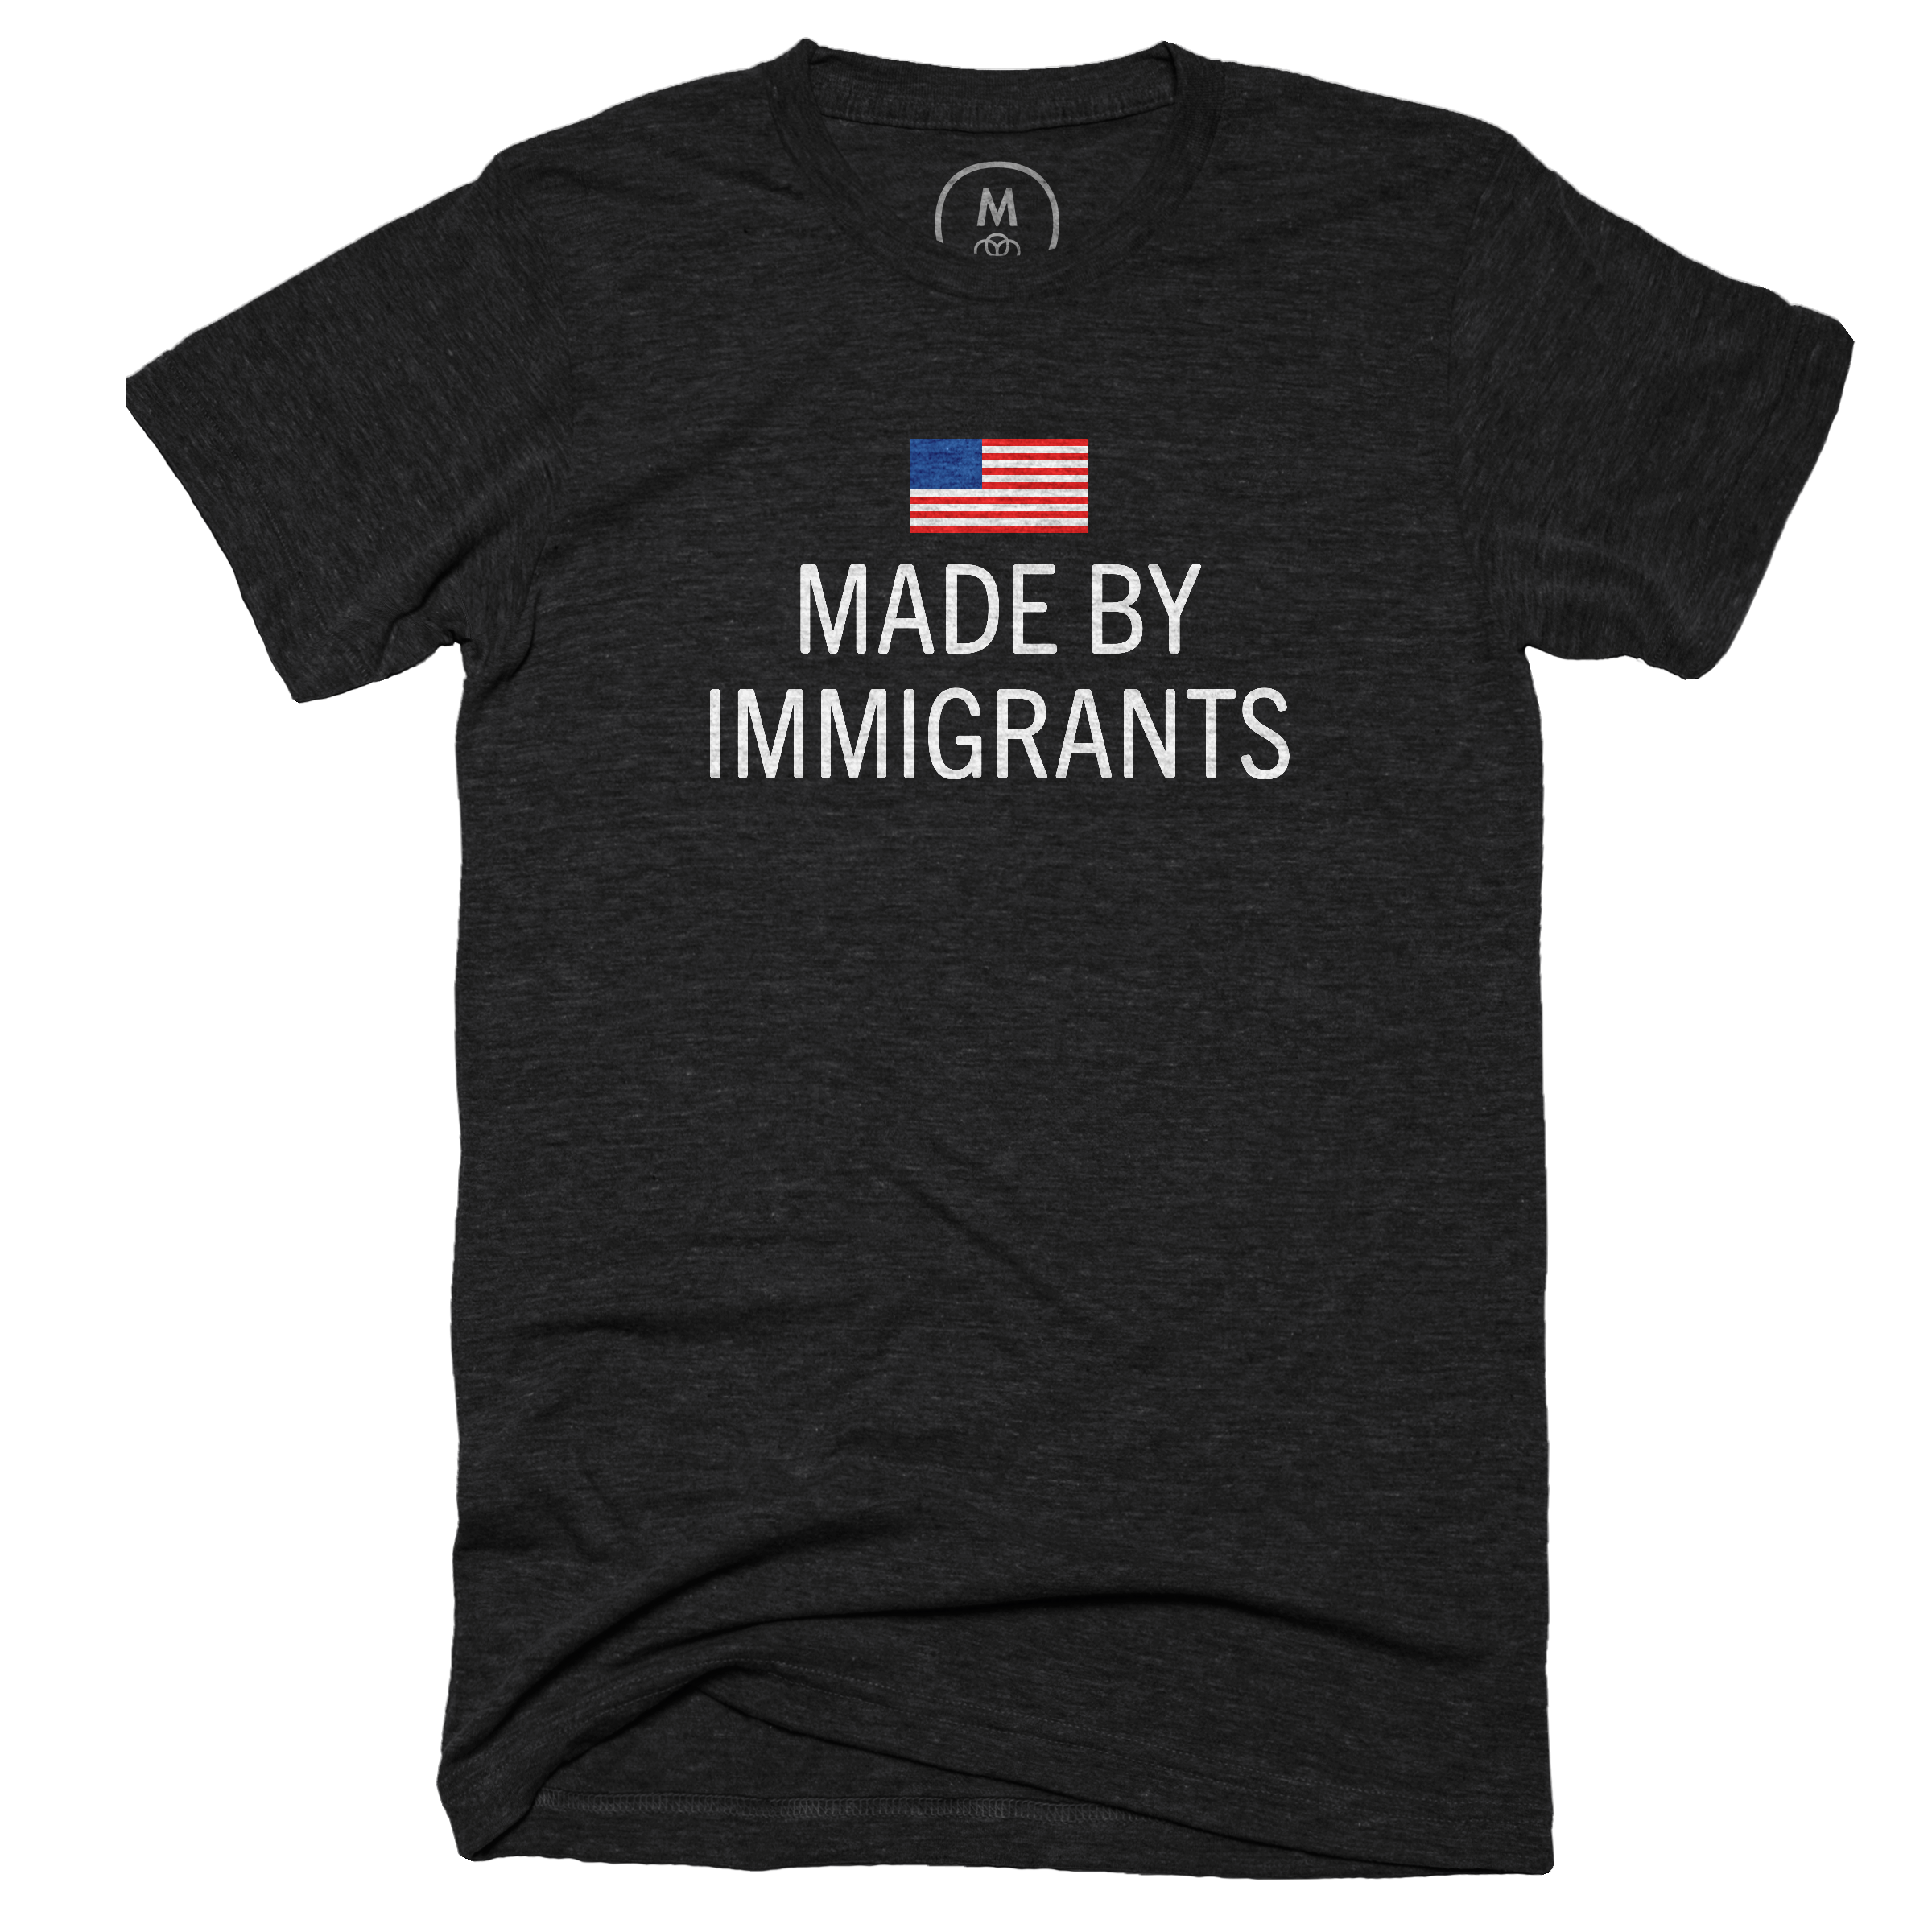 Made by immigrants.